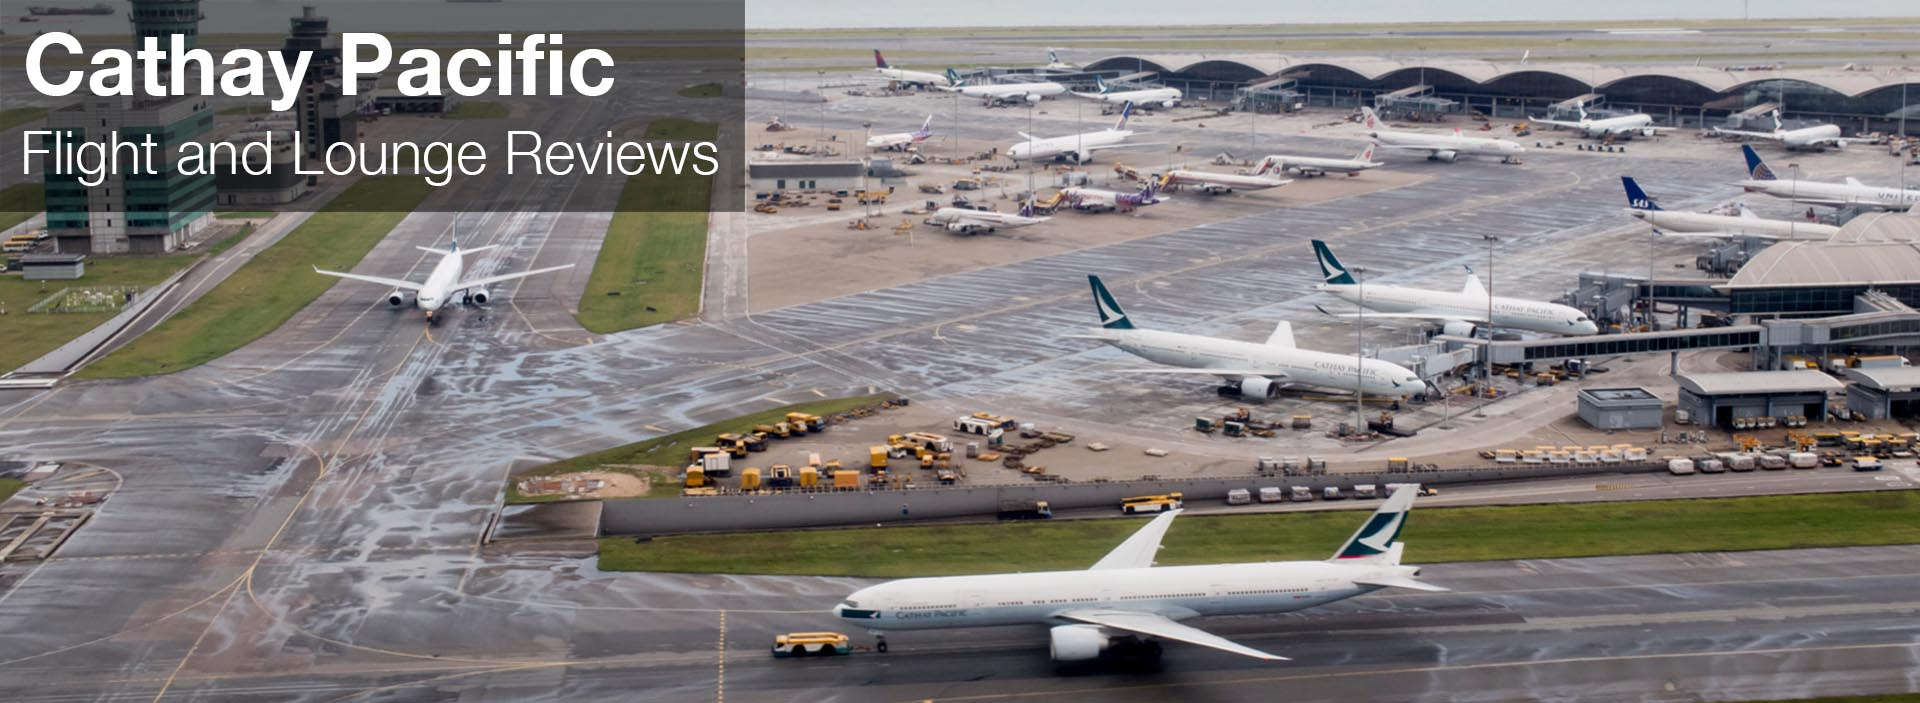 Cathay Pacific and Cathay Dragon: Flight and Lounge Reviews (and Resources)